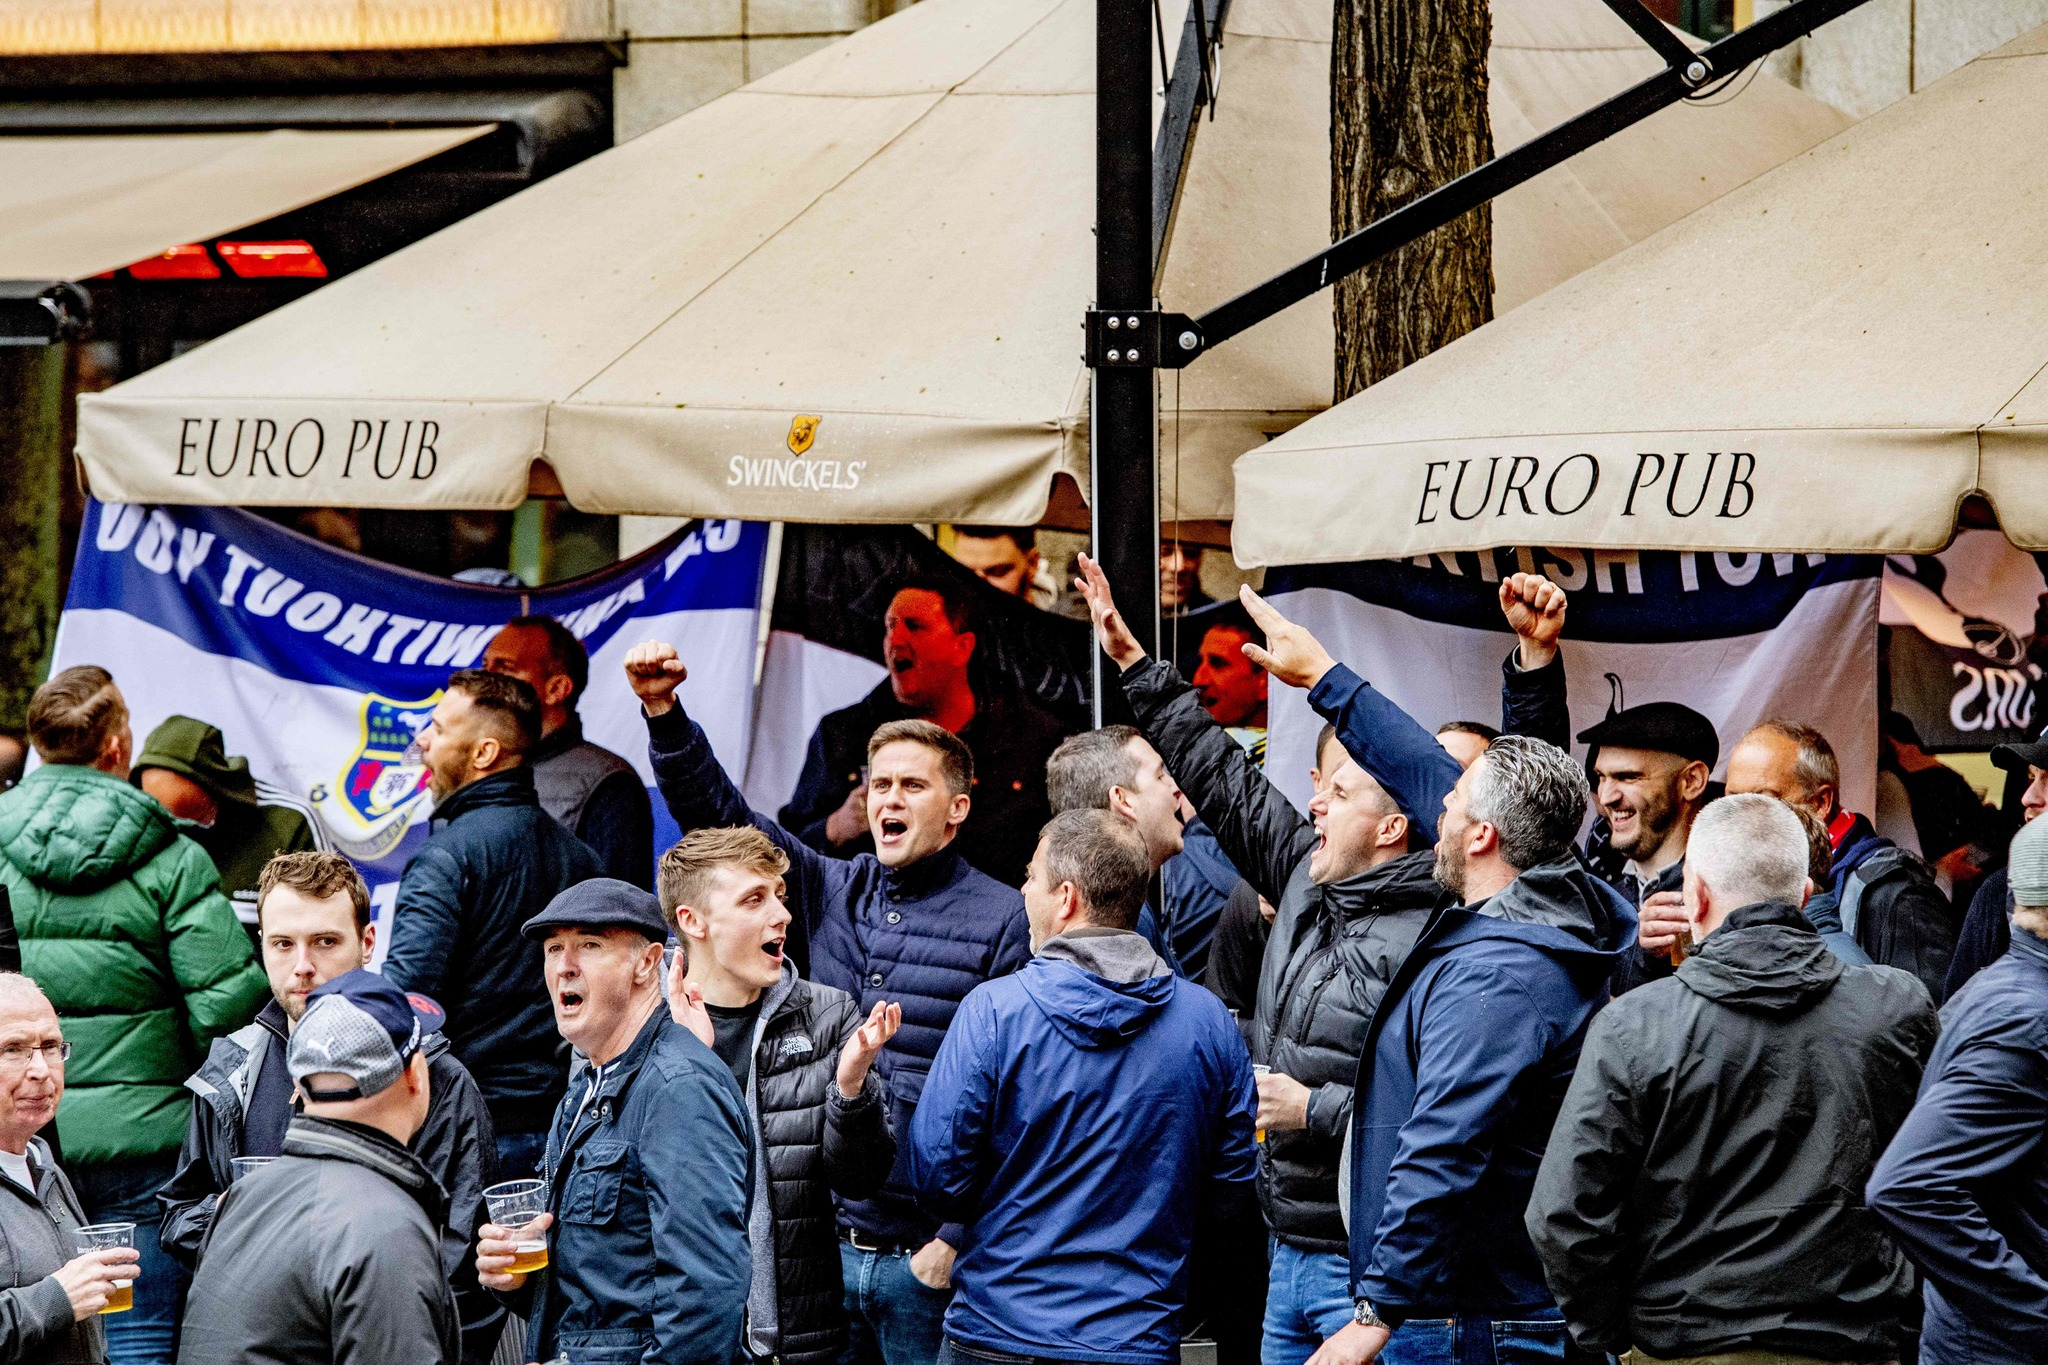 British <HIT>fans</HIT> react prior to the UEFA Champions League semi-final football match between Ajax Amsterdam and <HIT>Tottenham</HIT> Hotspur in Amsterdam on May 8, 2019. (Photo by Robin Utrecht / ANP / AFP) / Netherlands OUT